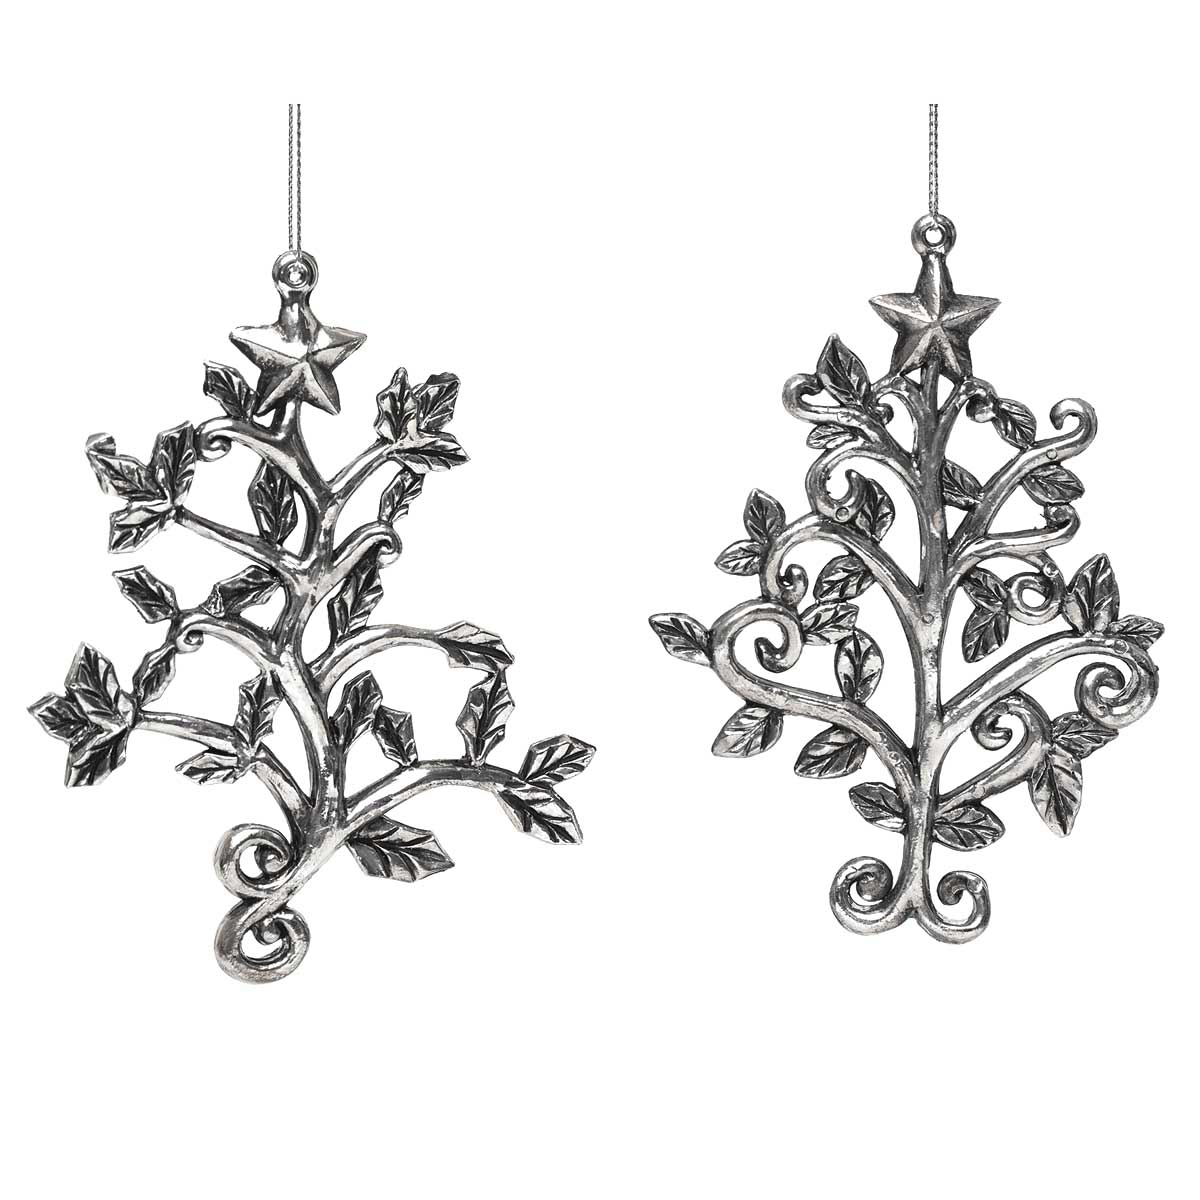 2 Piece Scrolled Tree Ornament Set